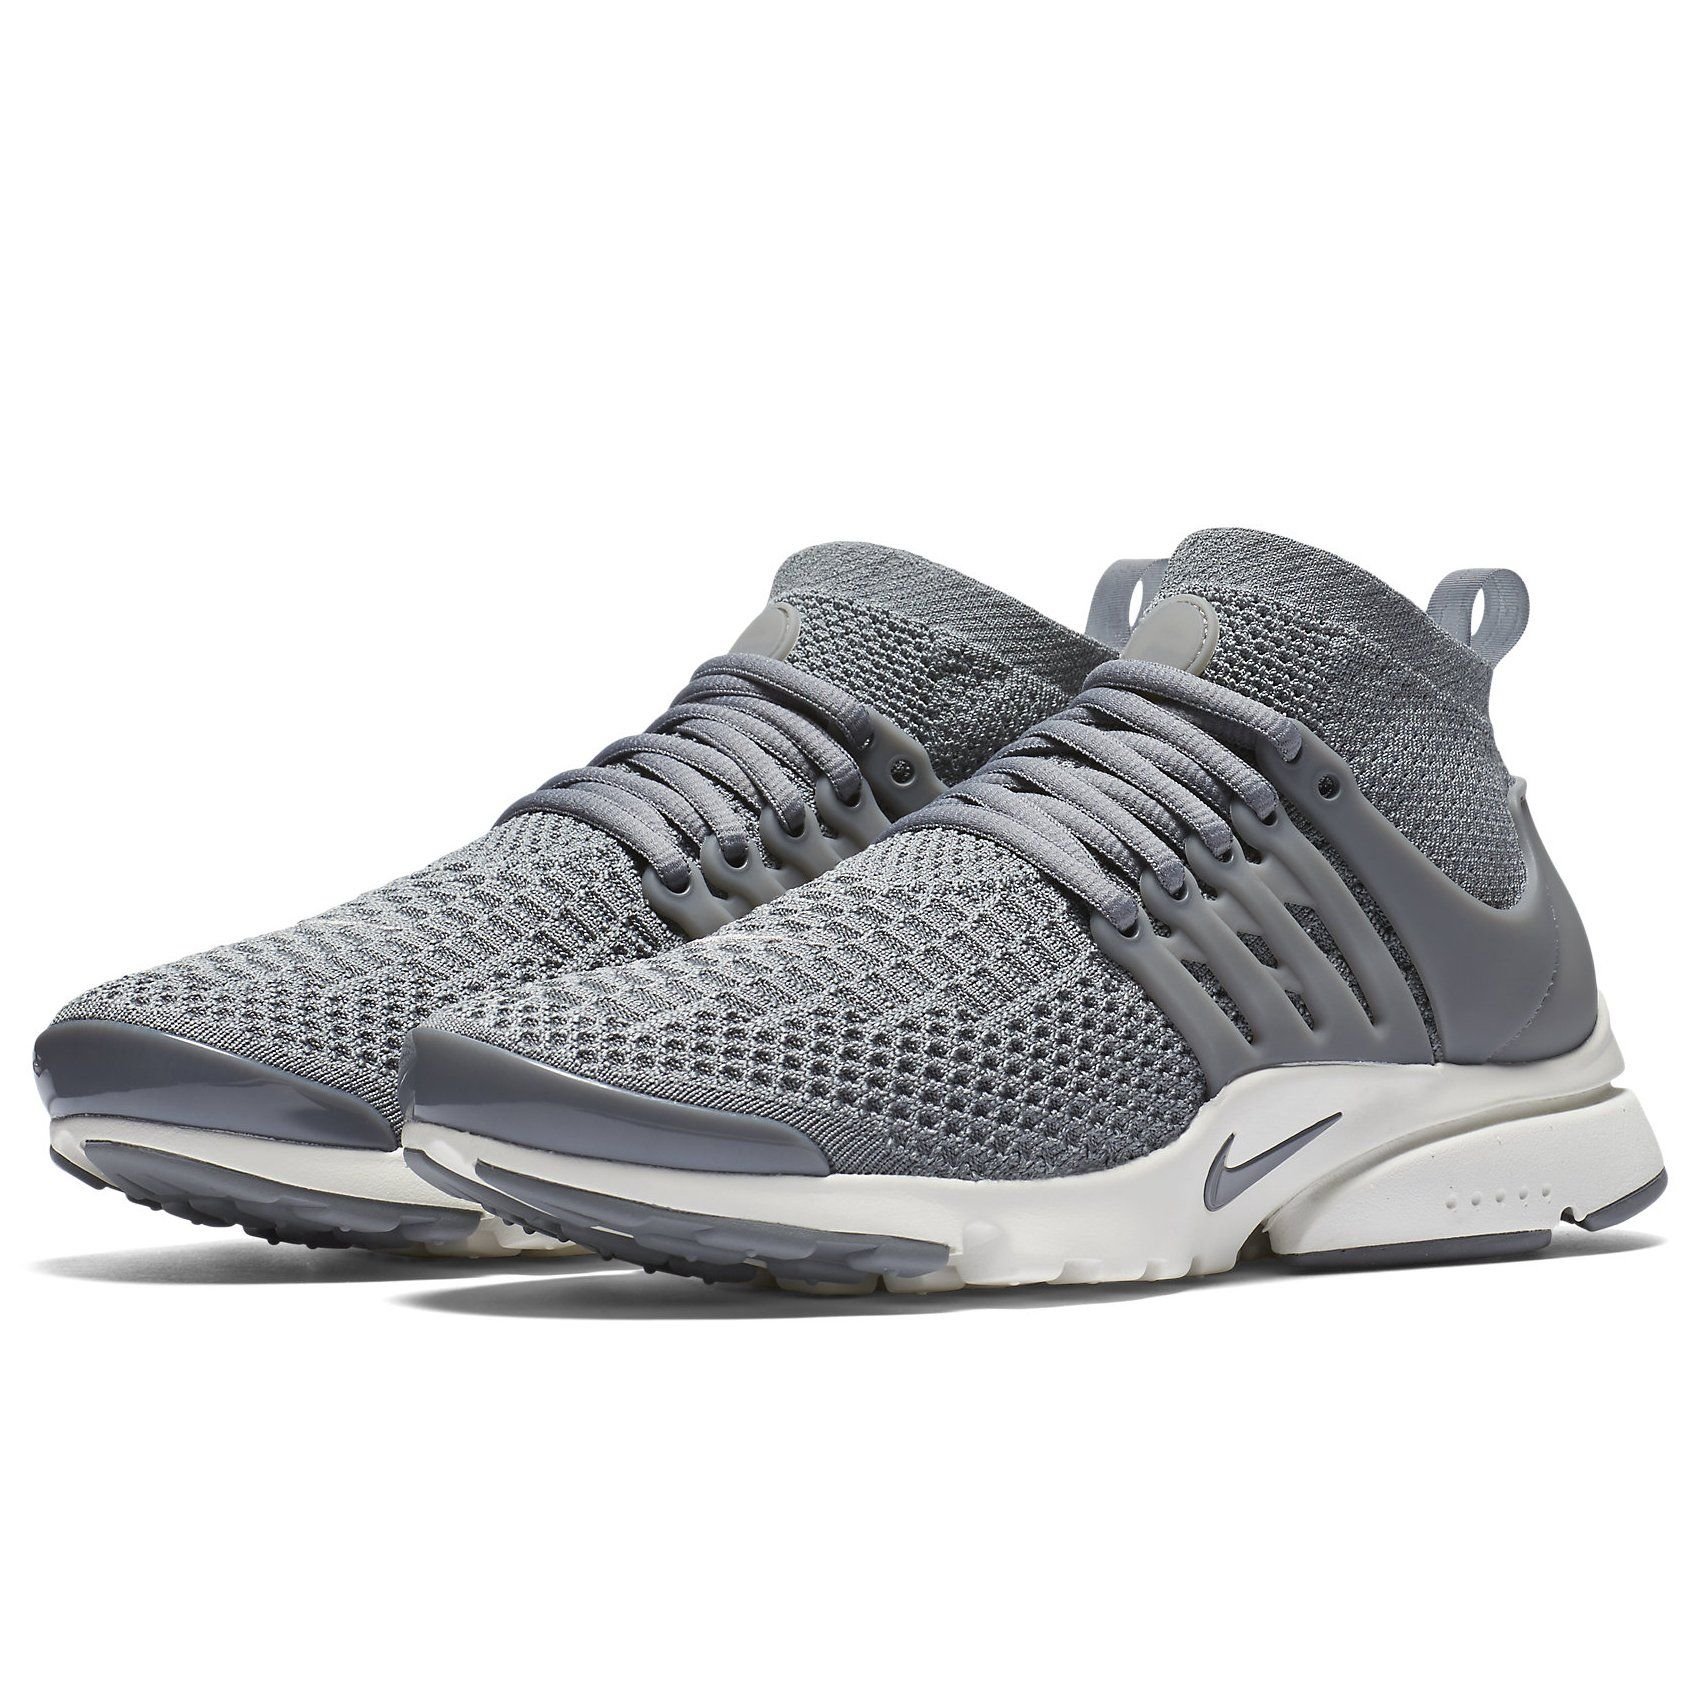 316ddfa46ffa Nike W Air Presto Flyknit Ultra 835738002 Cool Grey White Womens Running  Shoes size 7.5